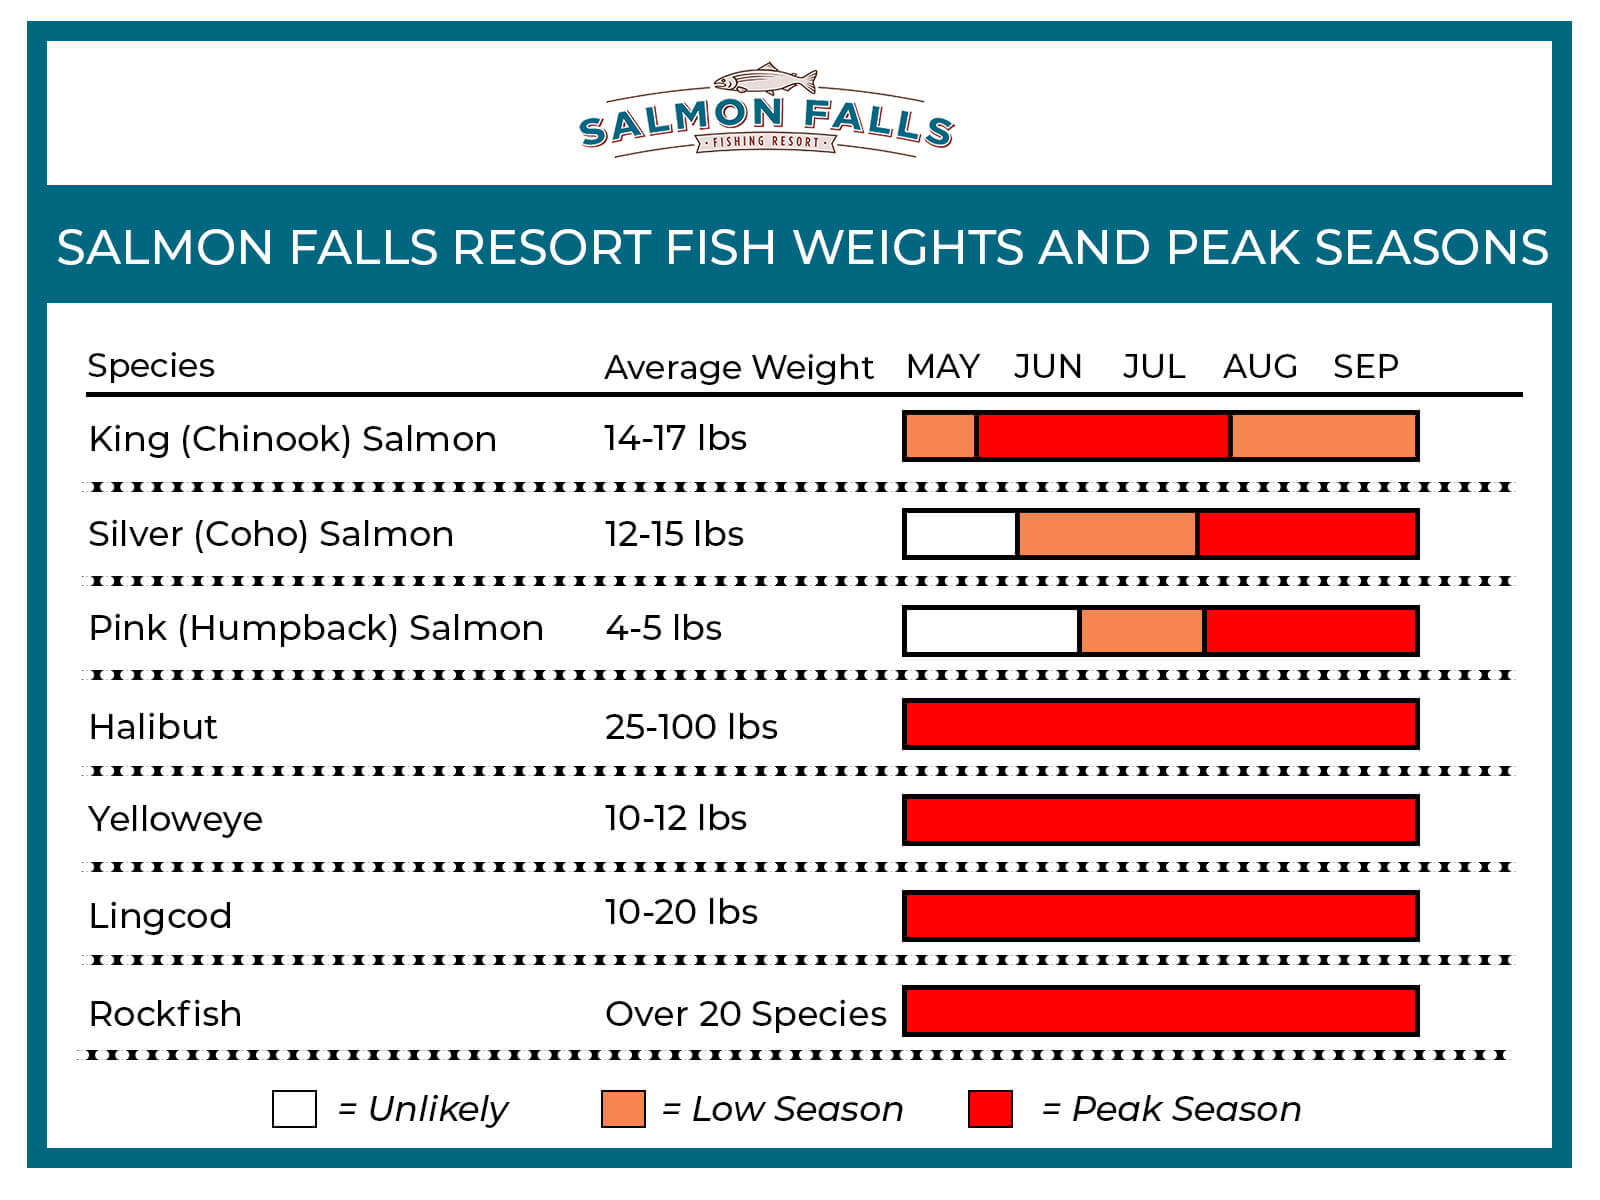 Salmon Falls Resort Fish Weights & Peak Season